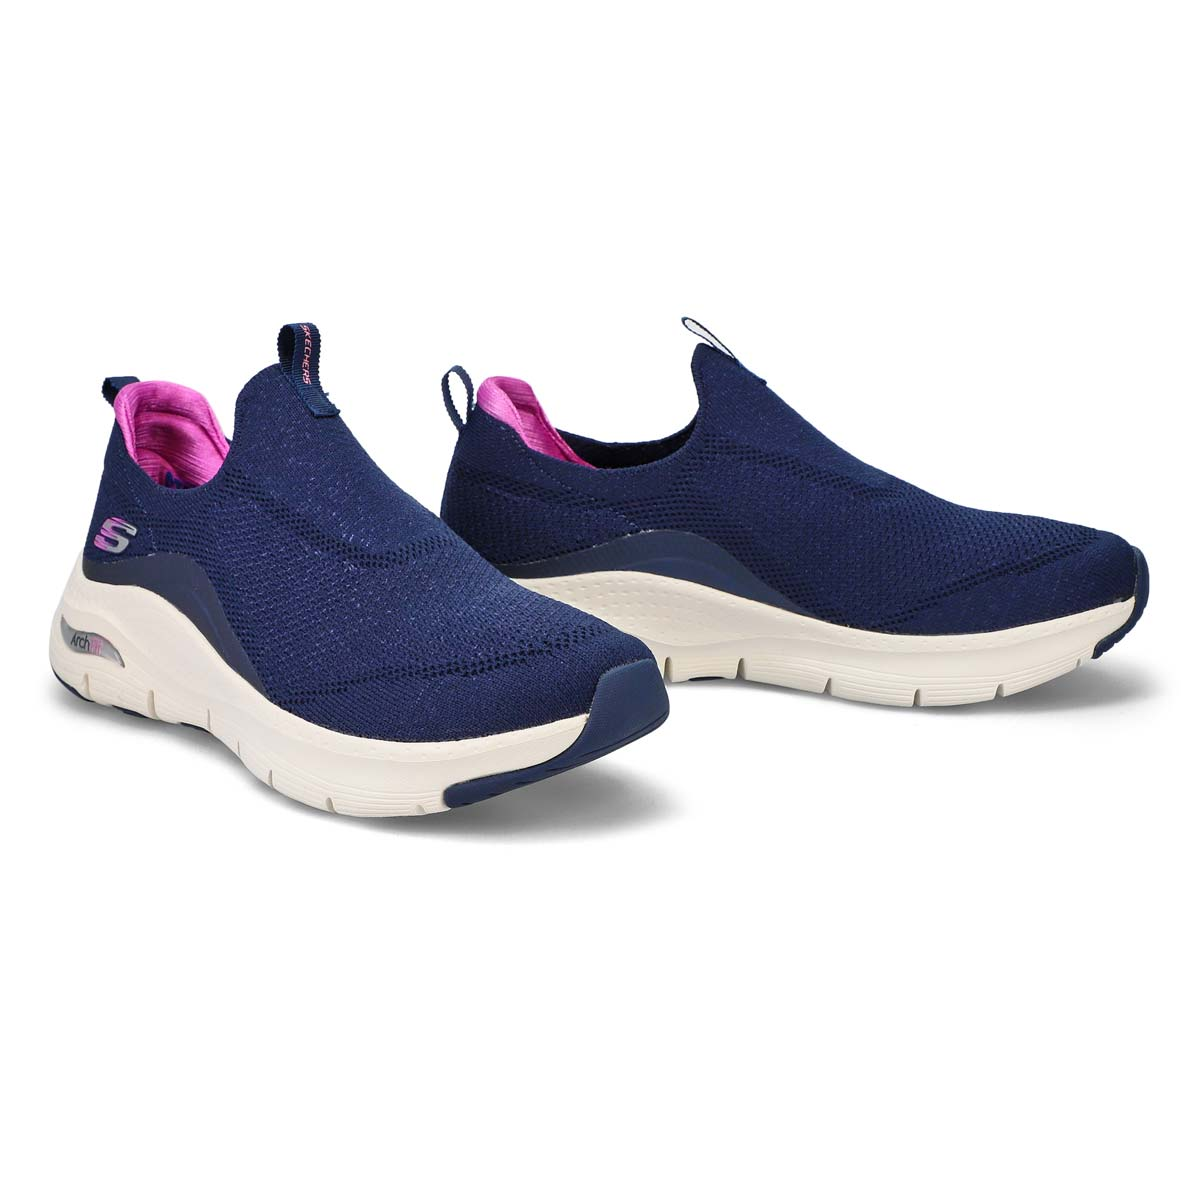 Womens' Arch Fit casual sneaker - navy/purple